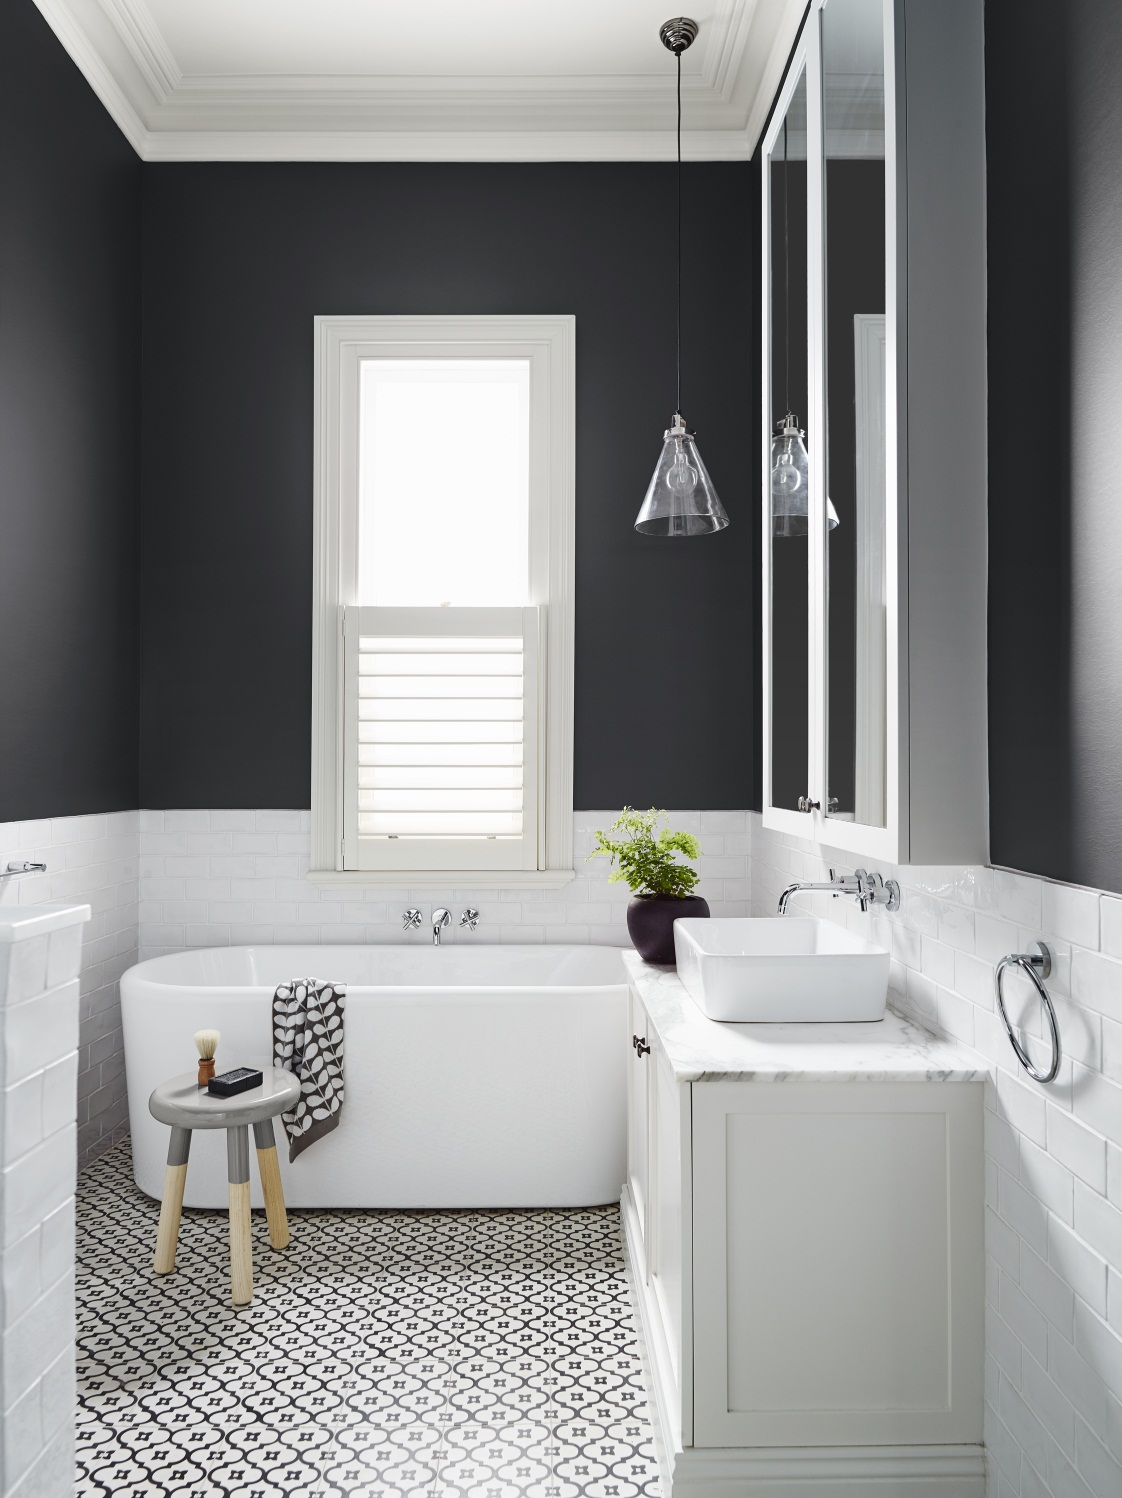 How to successfully use black in a bathroom